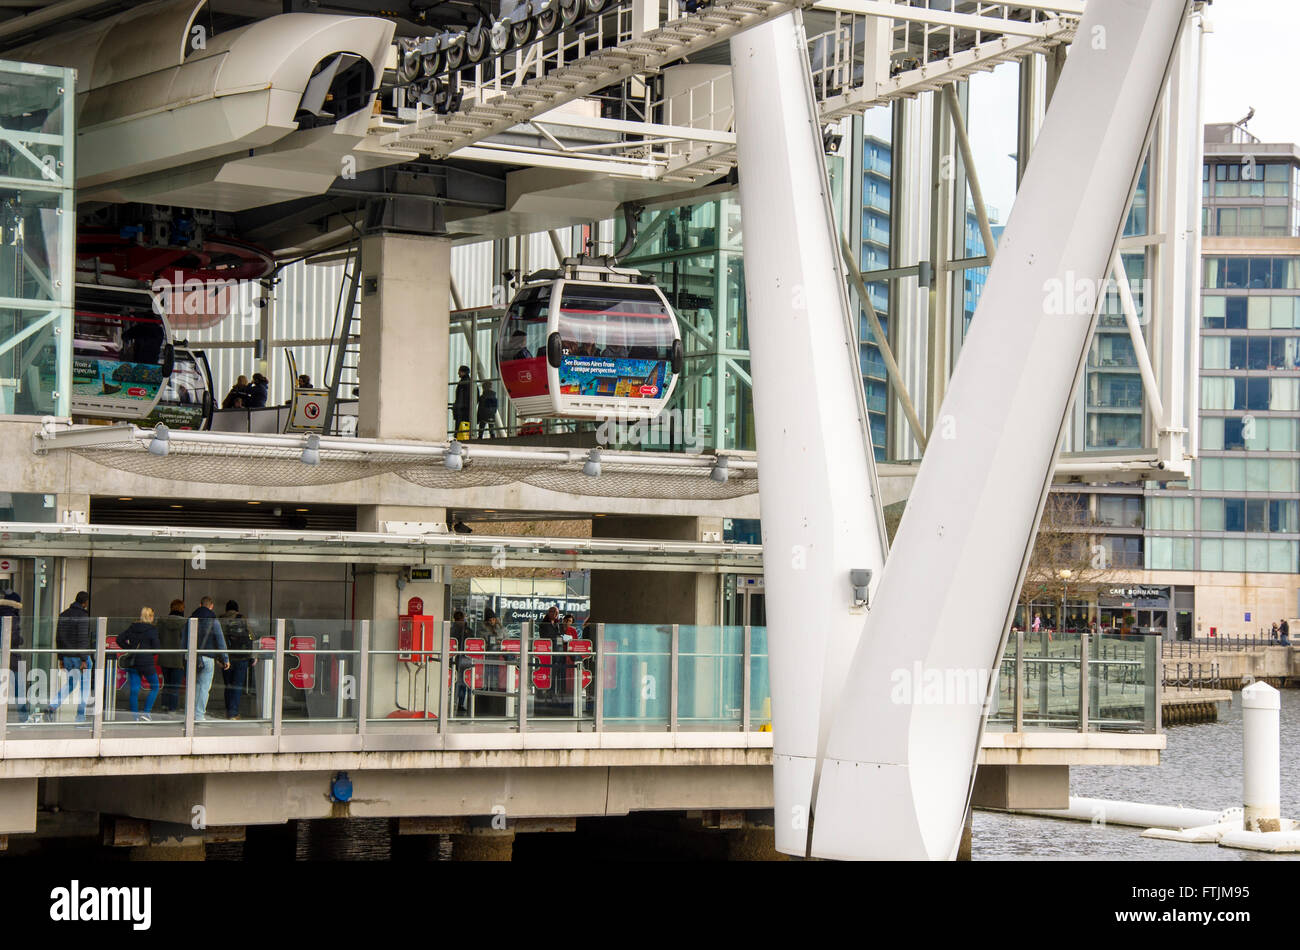 The Emirates Air Line cable car station at The Royal Victoria Dock in London. - Stock Image